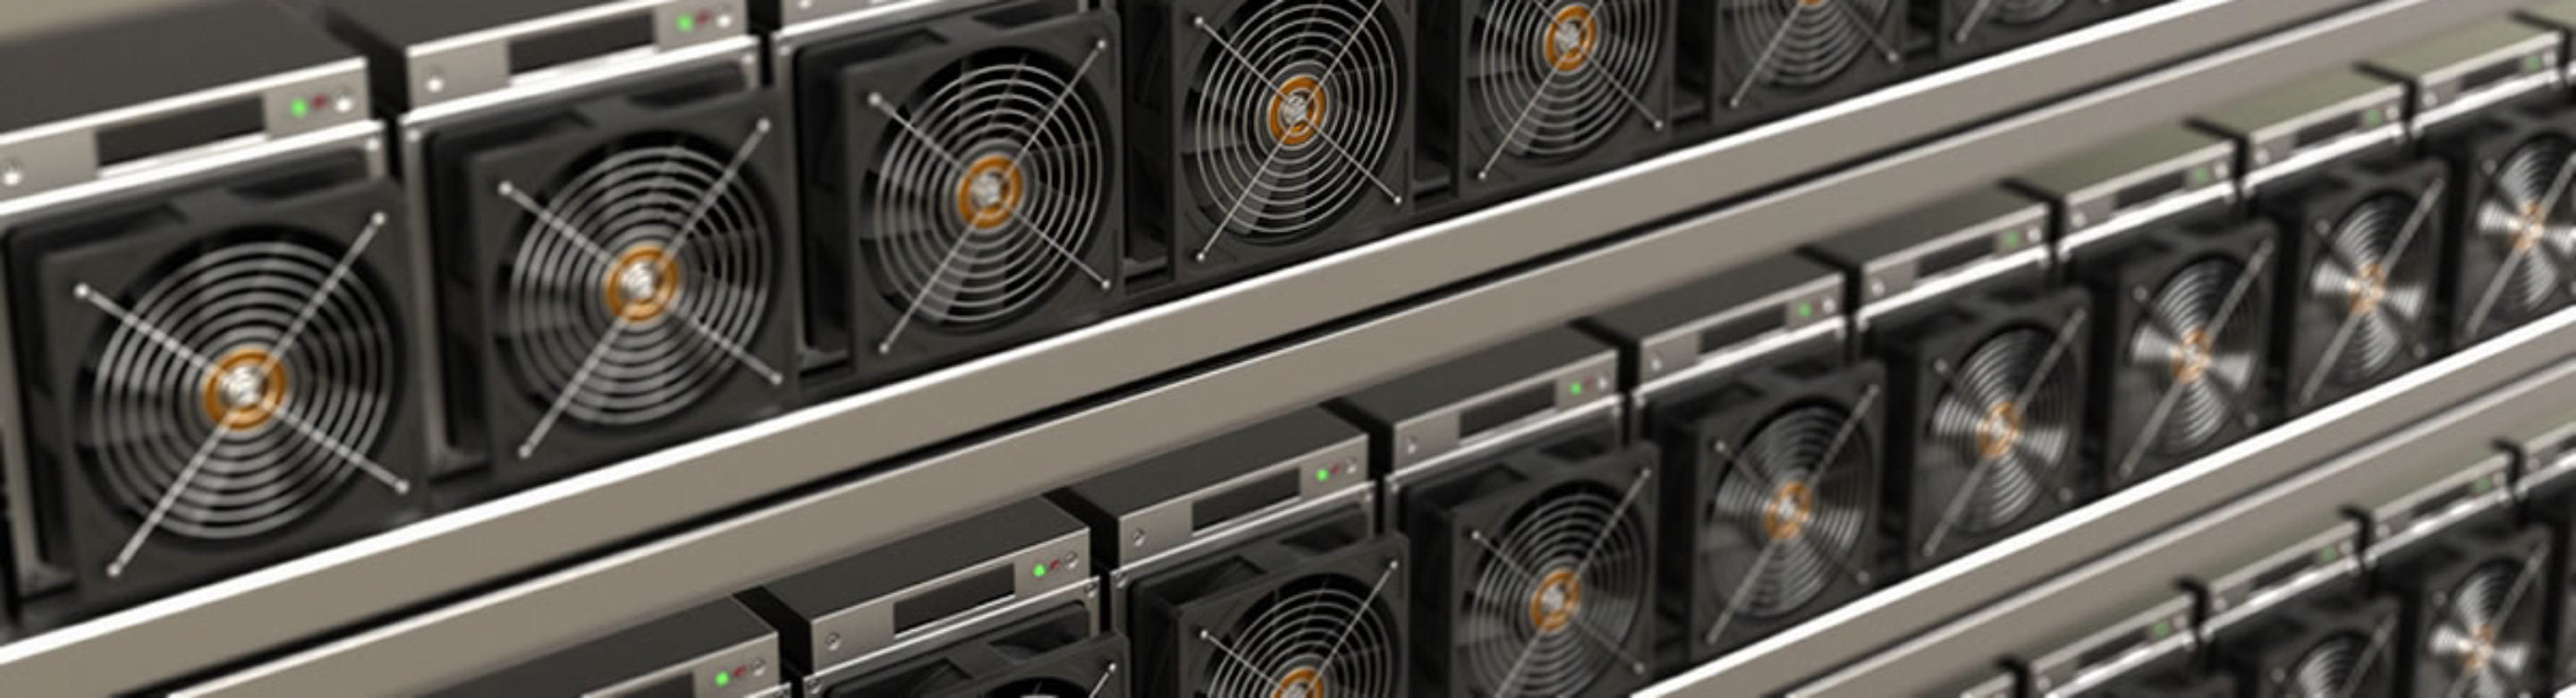 Bitmain's AntPool Activates Controversial AsicBoost for